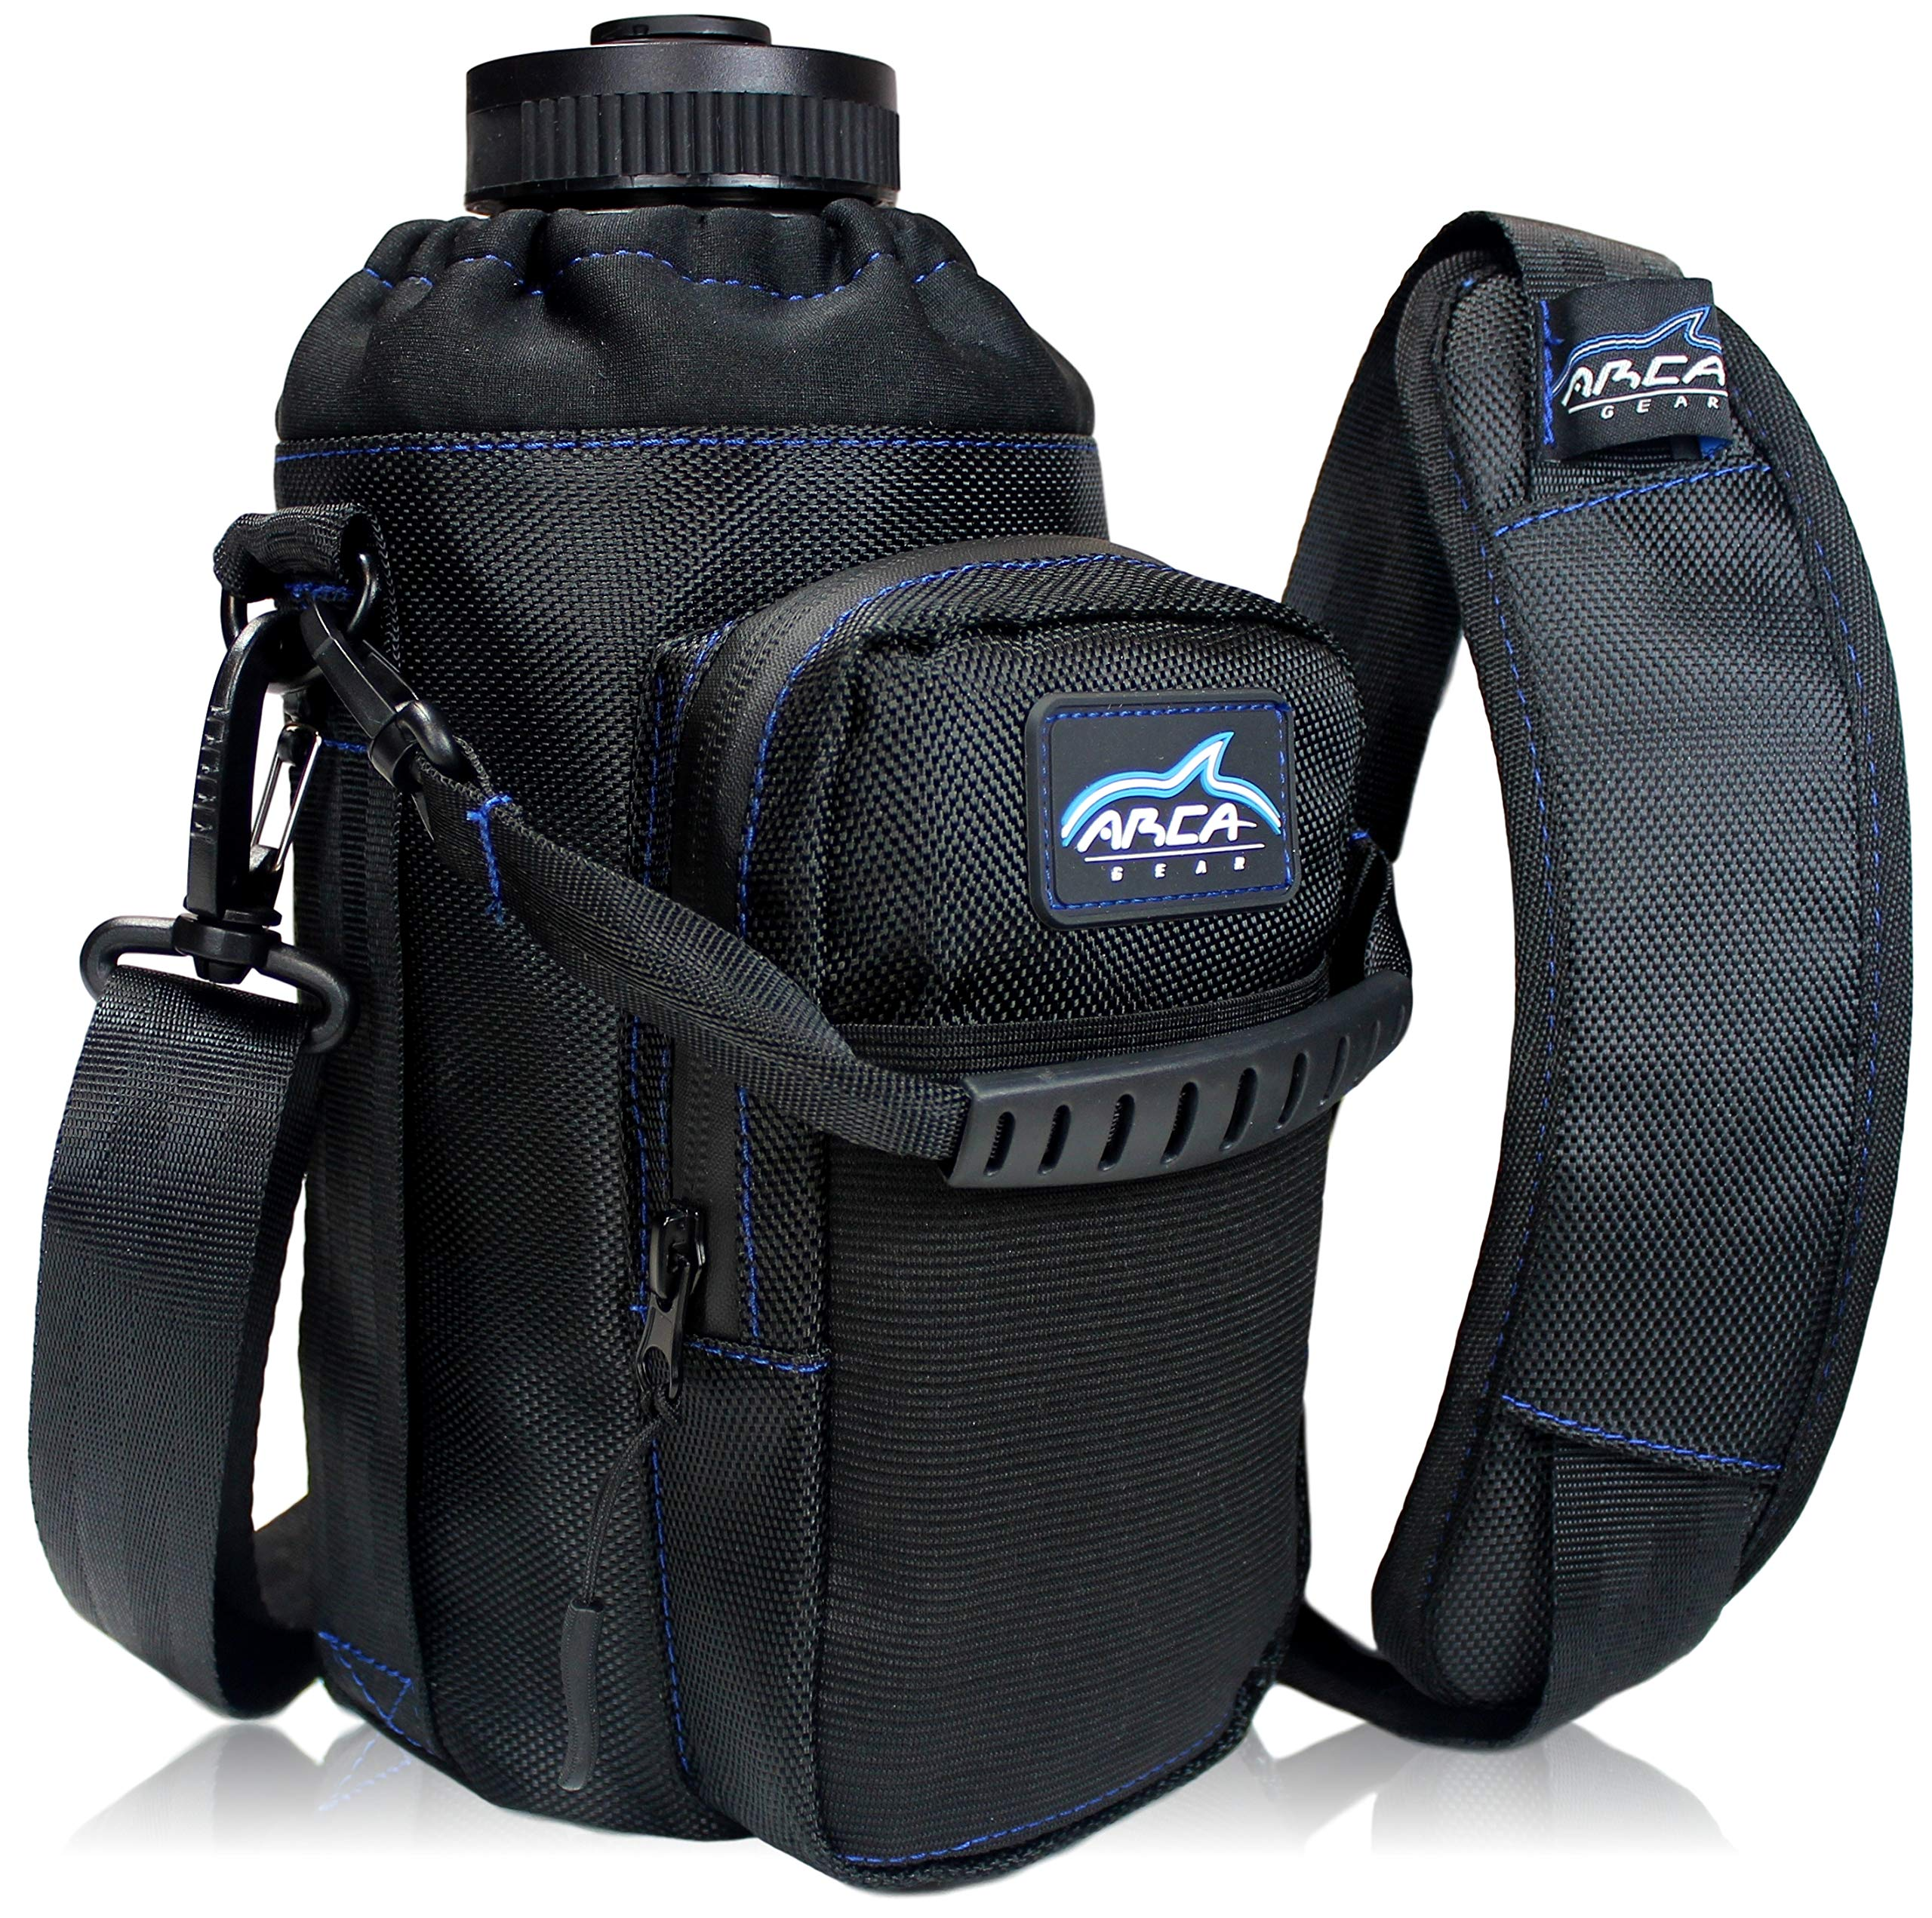 Arca Gear 64 oz Hydro Carrier - Insulated Water Bottle Sling w/Carry Handle, Shoulder Strap, Wallet and Two Pouches - The Perfect Flask Accessory - Black by Arca Gear